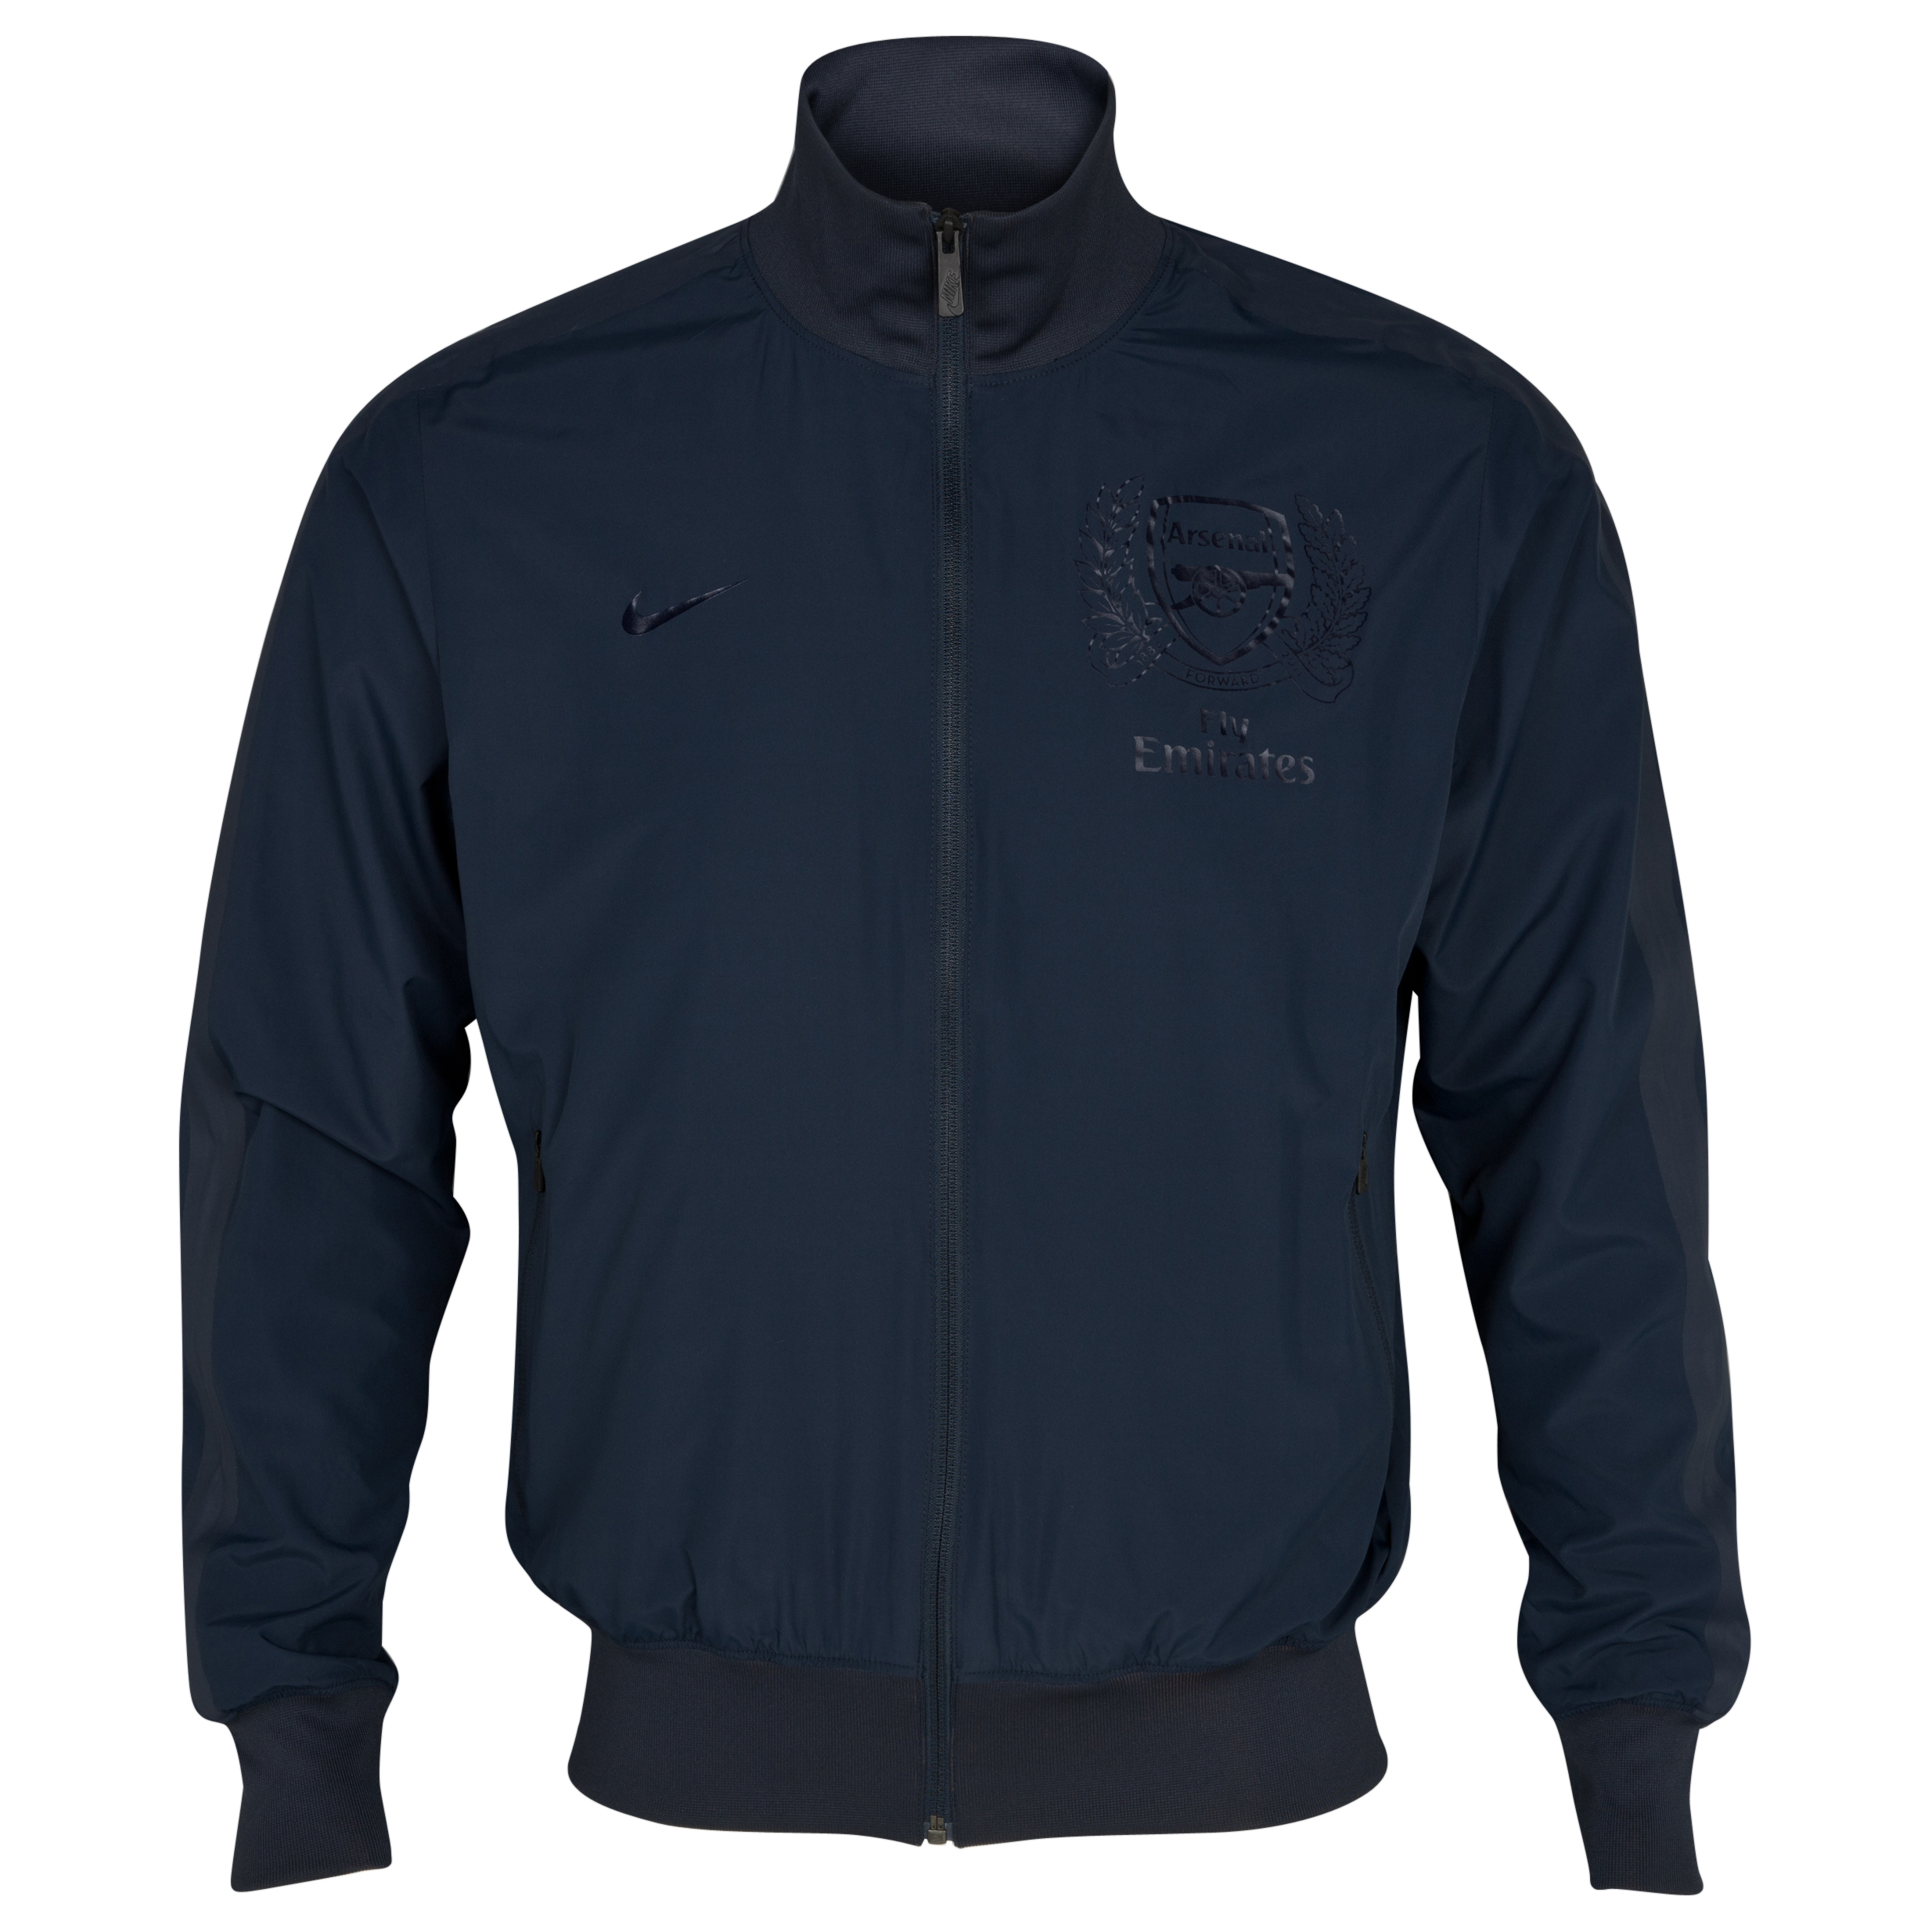 Arsenal Lightweight Woven Jacket - Dark Obsidian